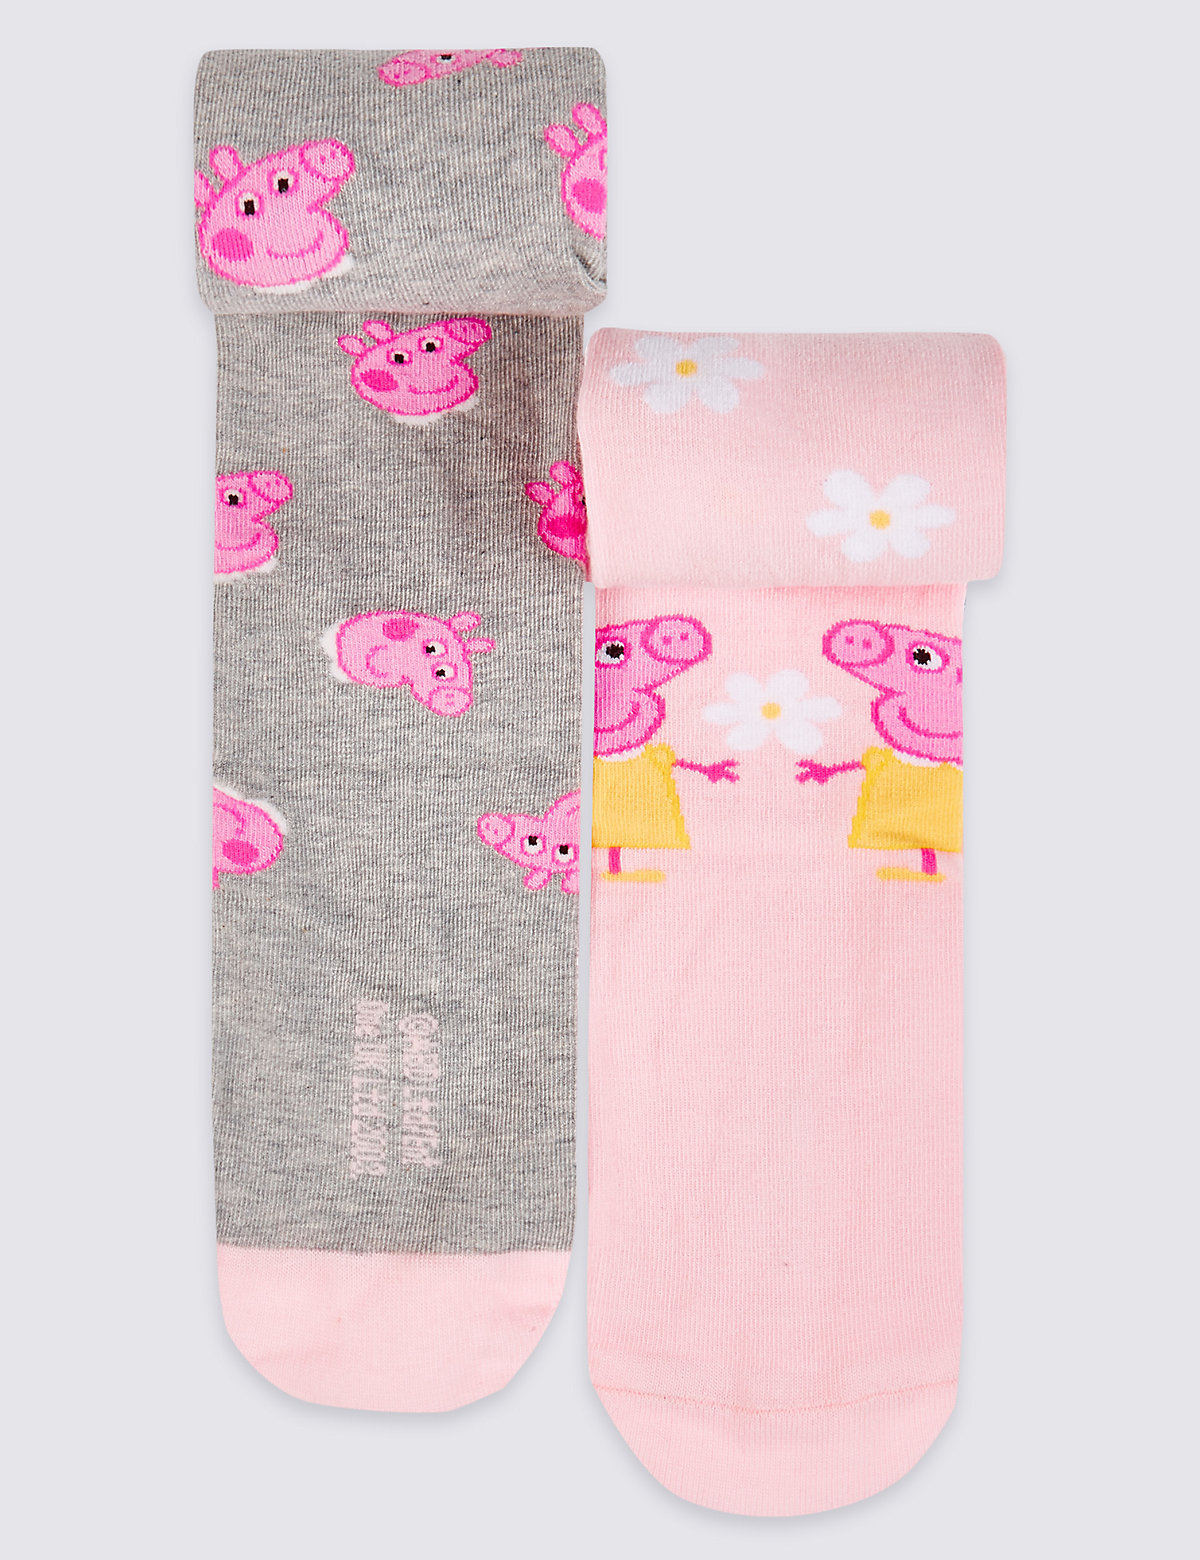 2 Pairs of Peppa Pig Tights (28 Years)